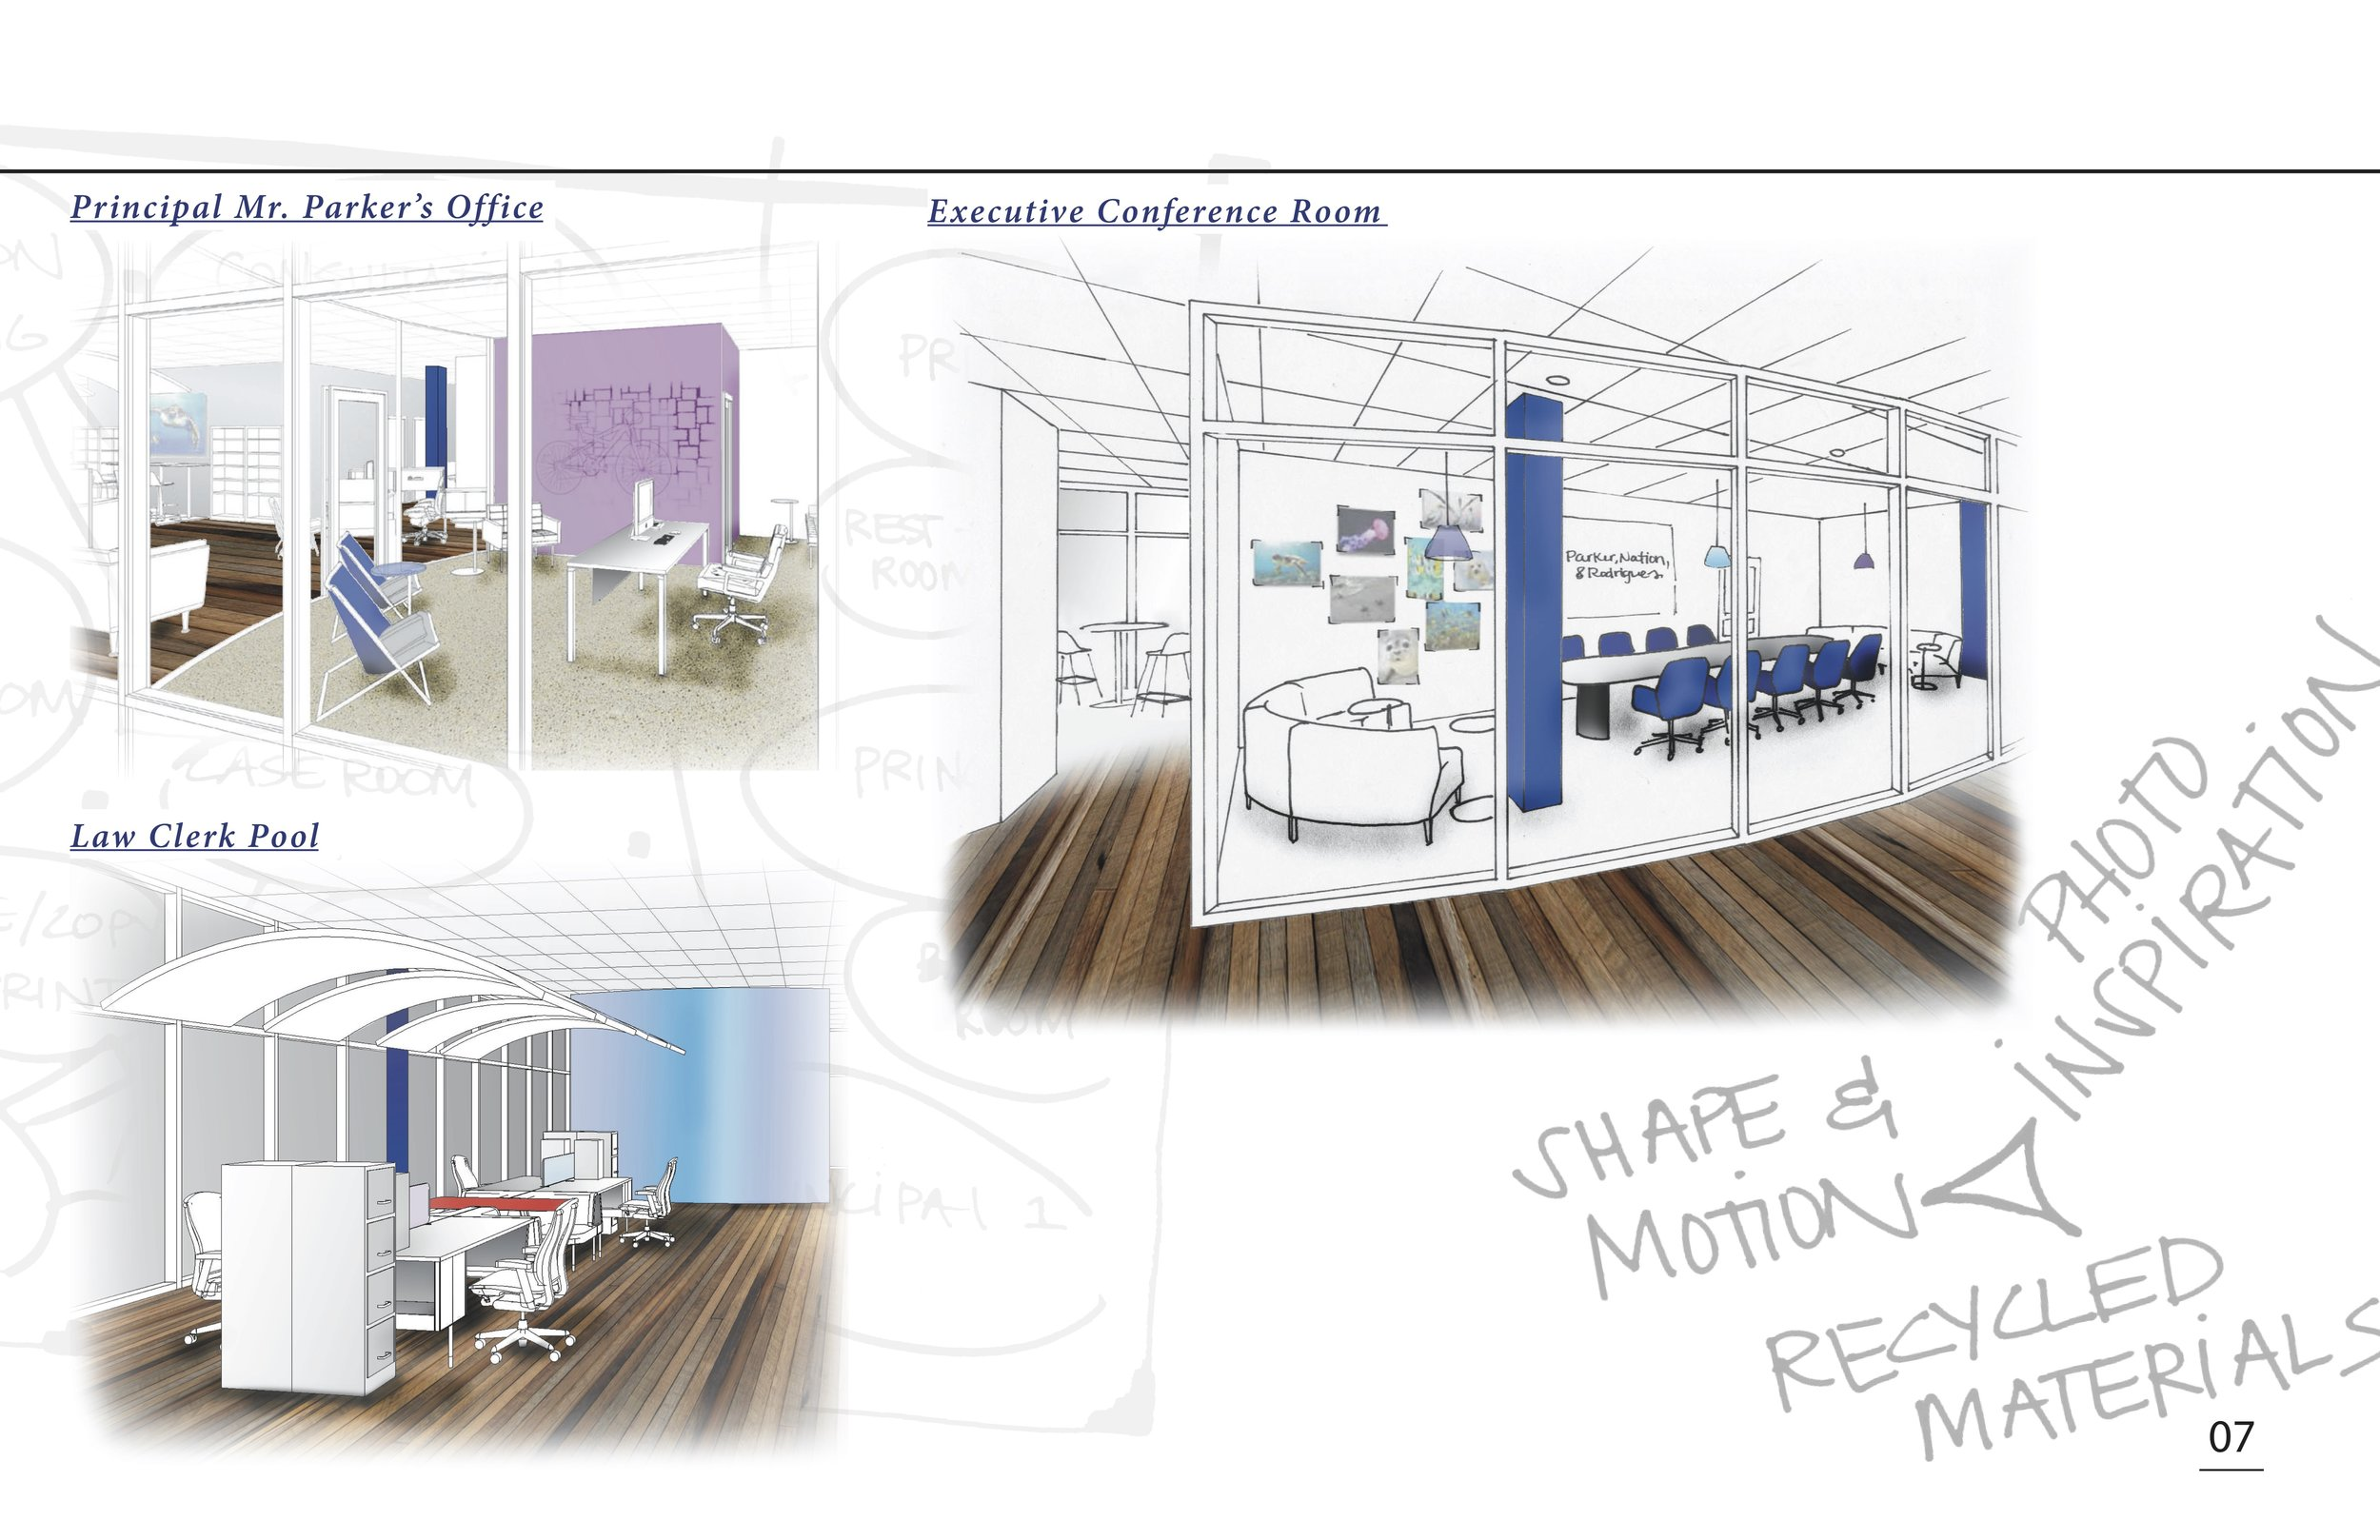 acoustic sound clouds, benching desks for an open office and a statement worthy conference room.